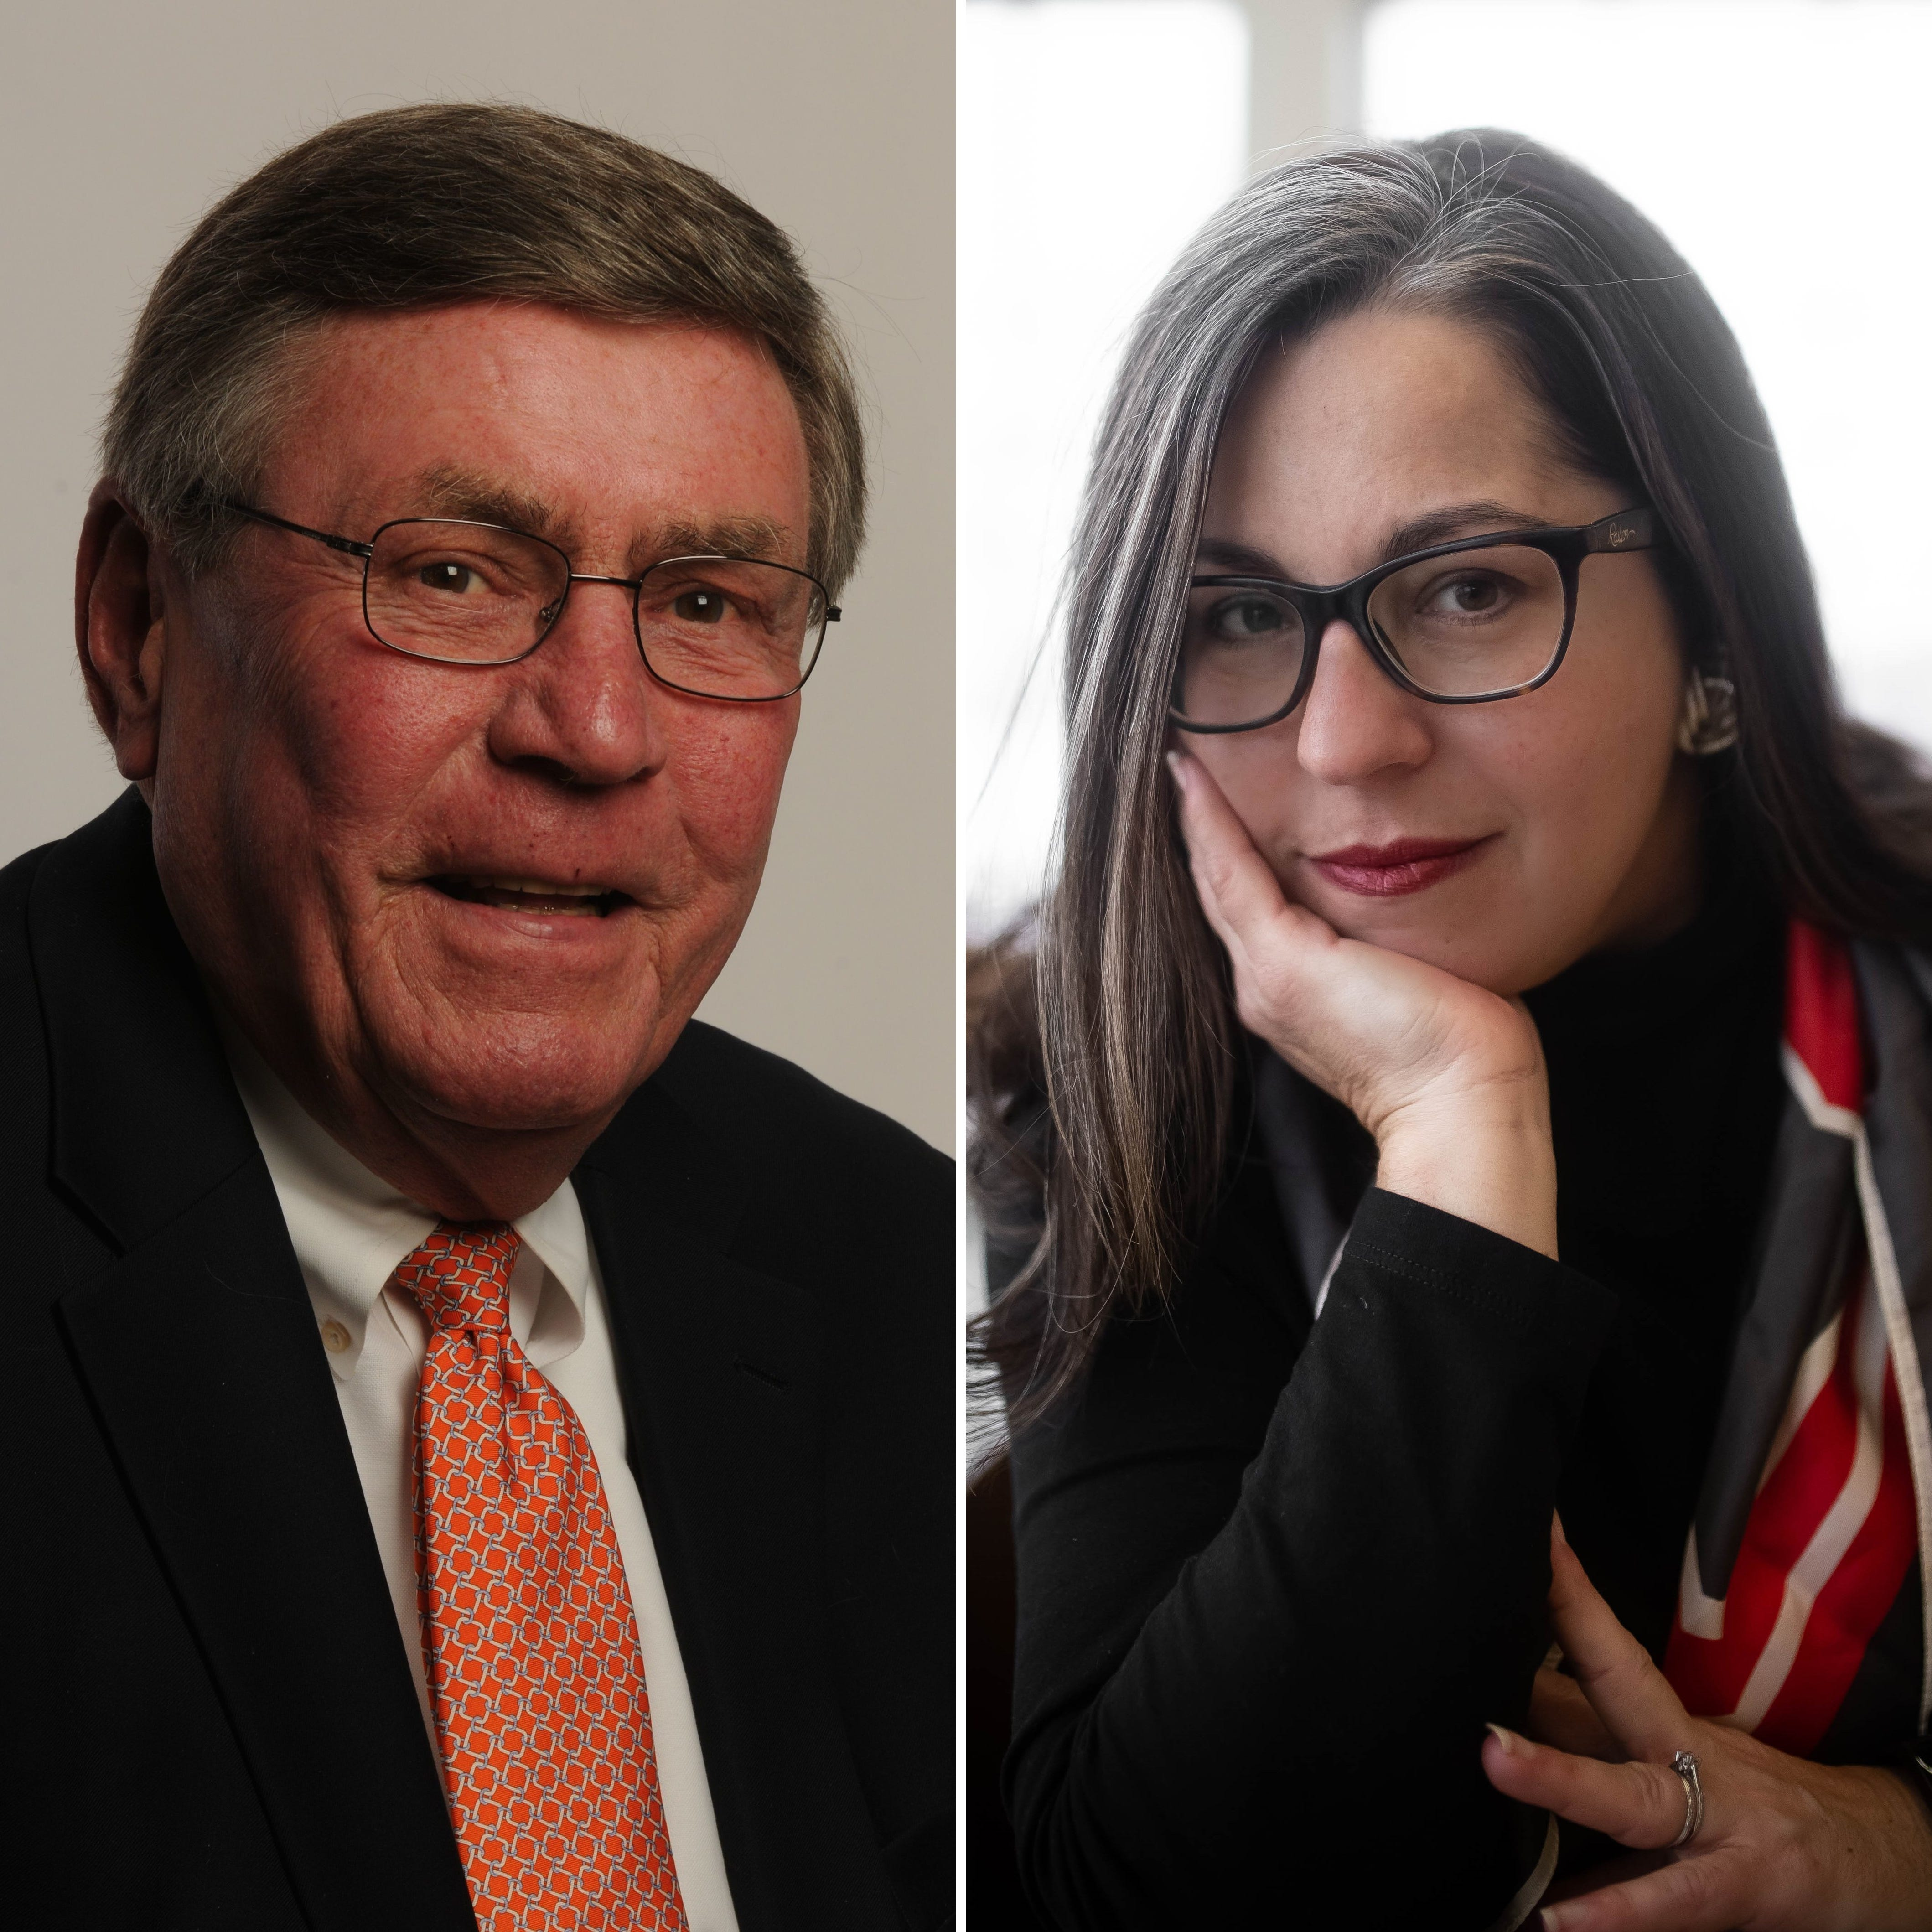 Get to know Oshkosh mayor candidates Steve Cummings and Lori Palmeri ahead of Tuesday election